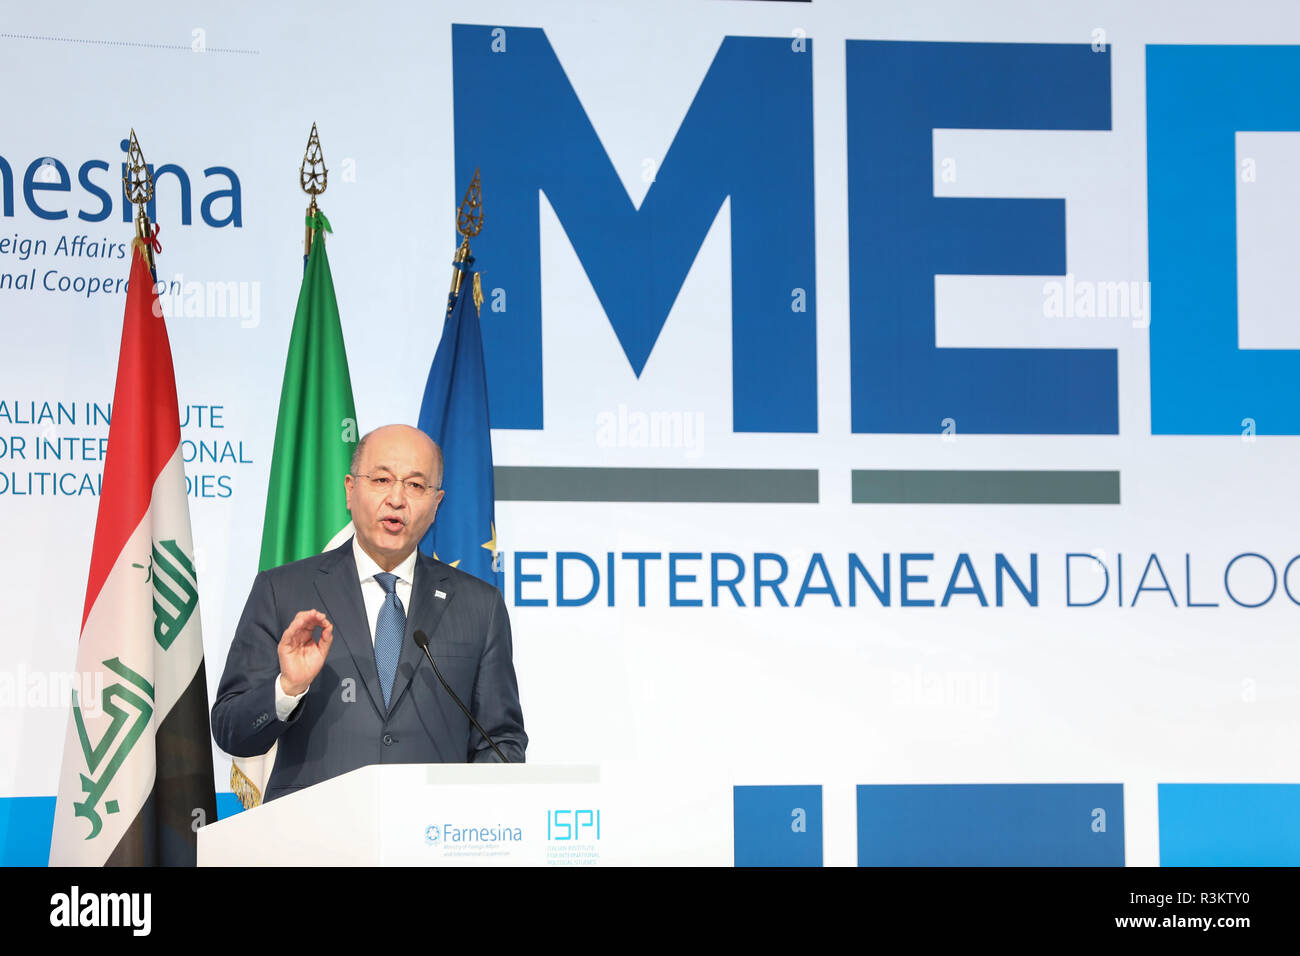 Rome, Italy. 22nd Nov, 2018. Iraqi President Barham Salih delivers a speech at the 4th annual Mediterranean Dialogues Conference (MED) which kicked off Thursday in Rome, Italy, Nov. 22, 2018. Credit: Cheng Tingting/Xinhua/Alamy Live News - Stock Image